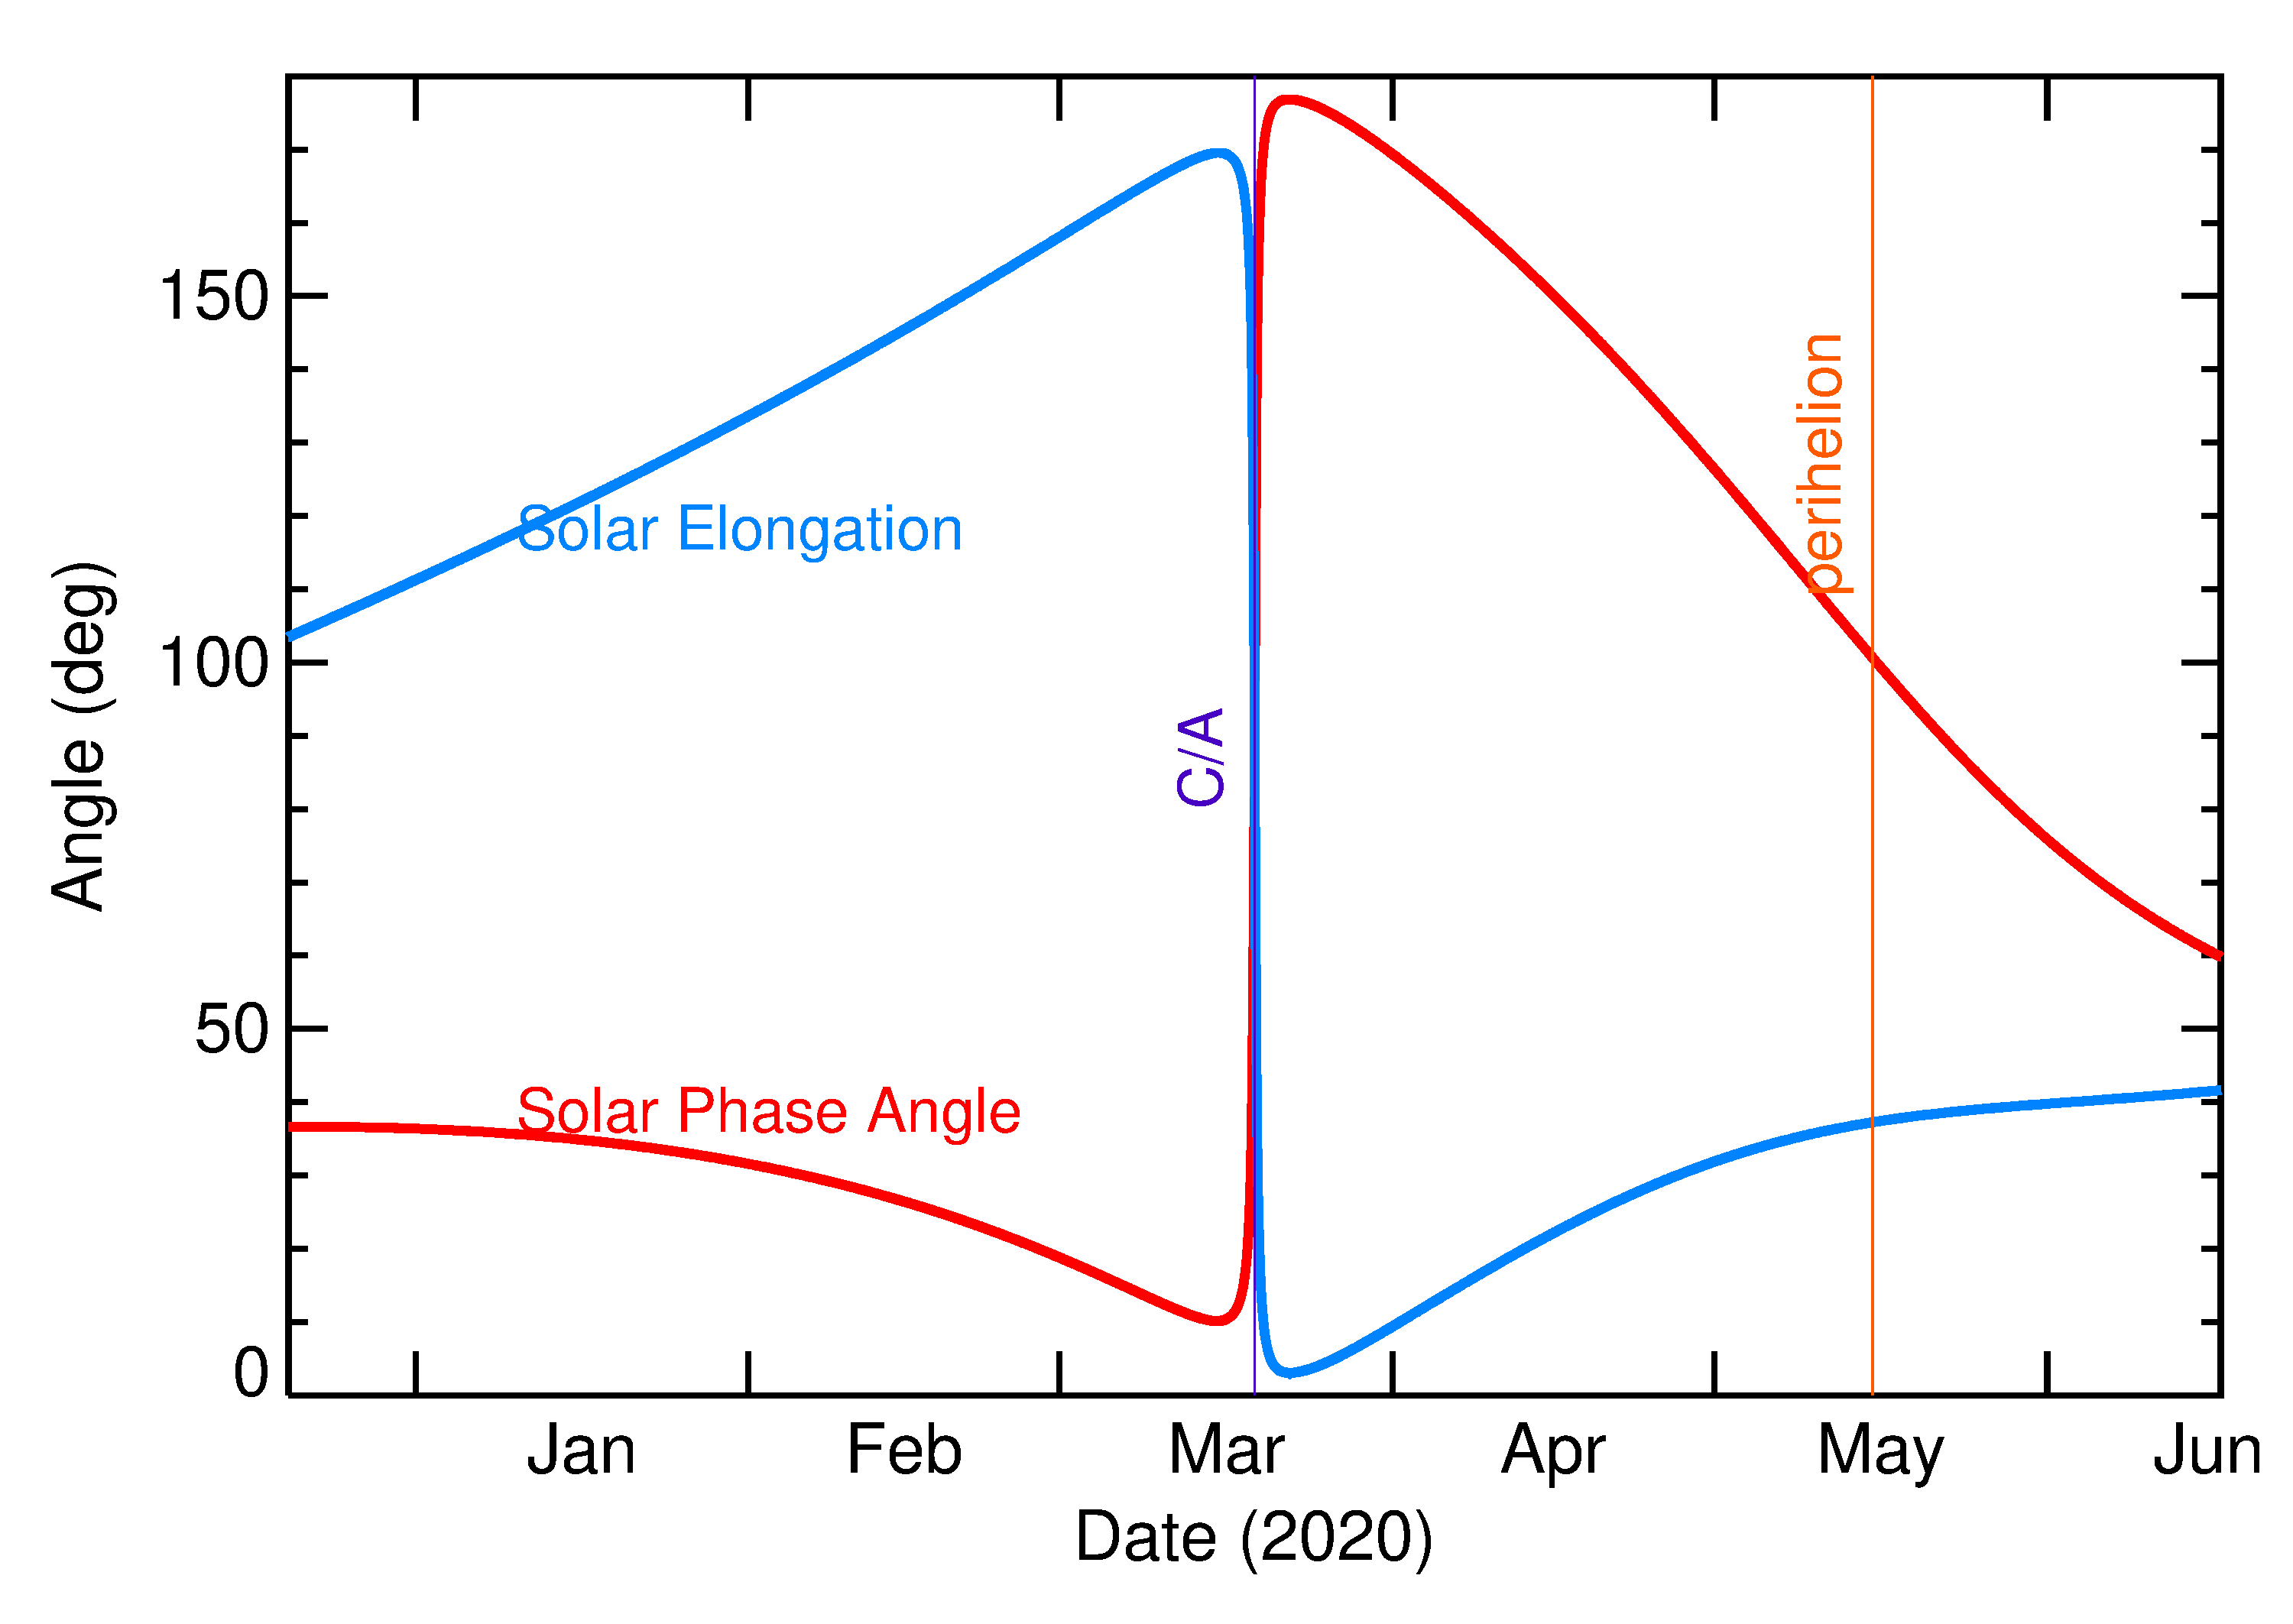 Solar Elongation and Solar Phase Angle of 2020 FD in the months around closest approach